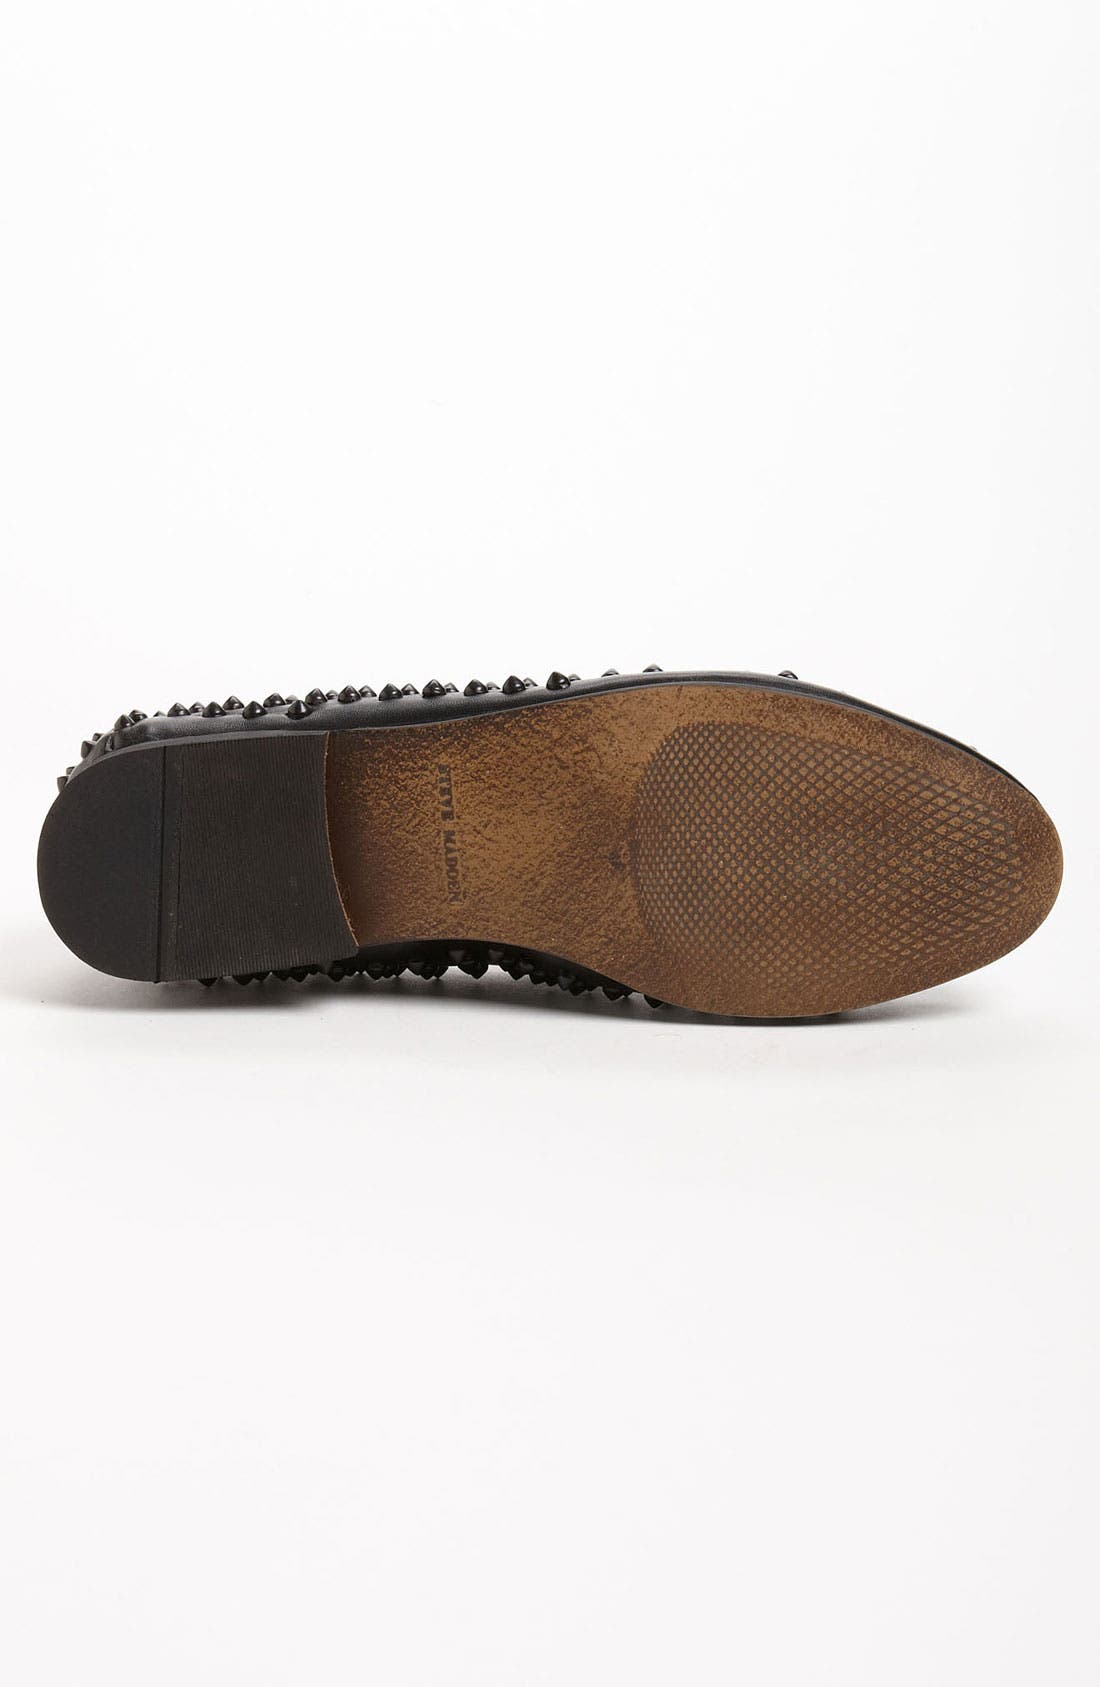 Alternate Image 4  - Steve Madden 'Jagggrr' Studded Loafer